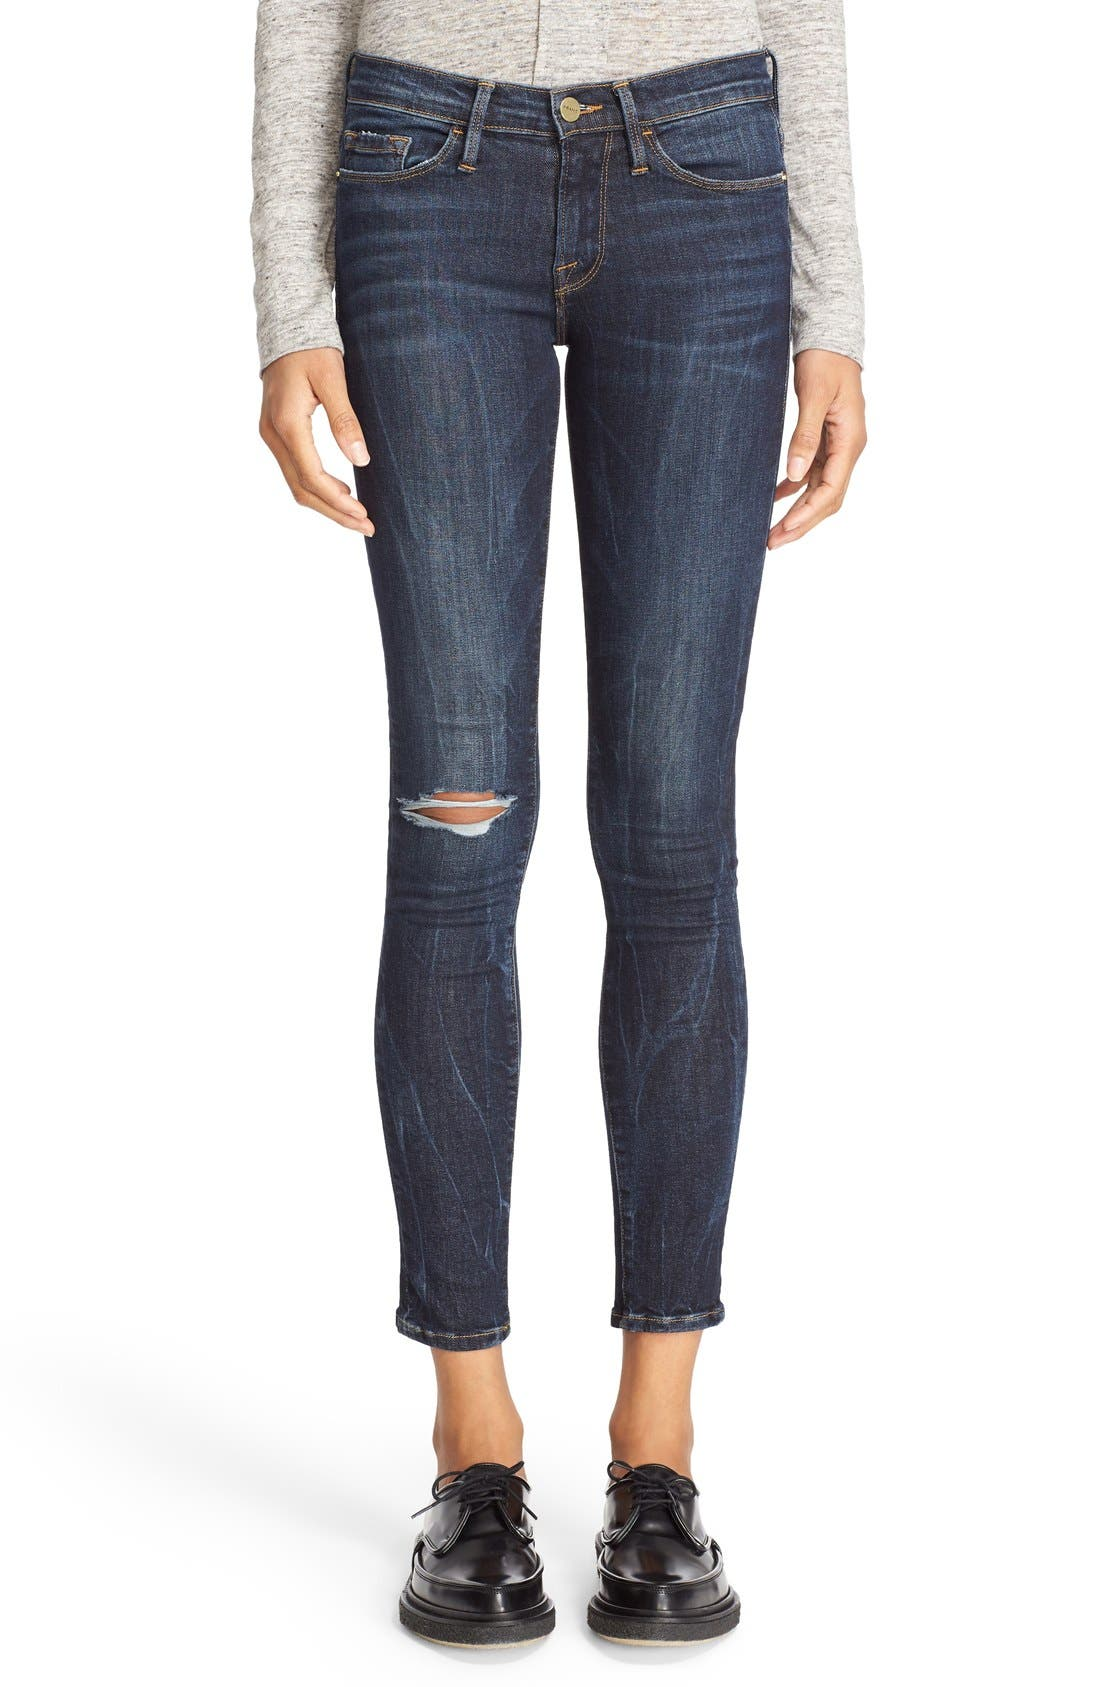 FRAME 'Le Skinny' Ripped Crop Jeans, Main, color, 401